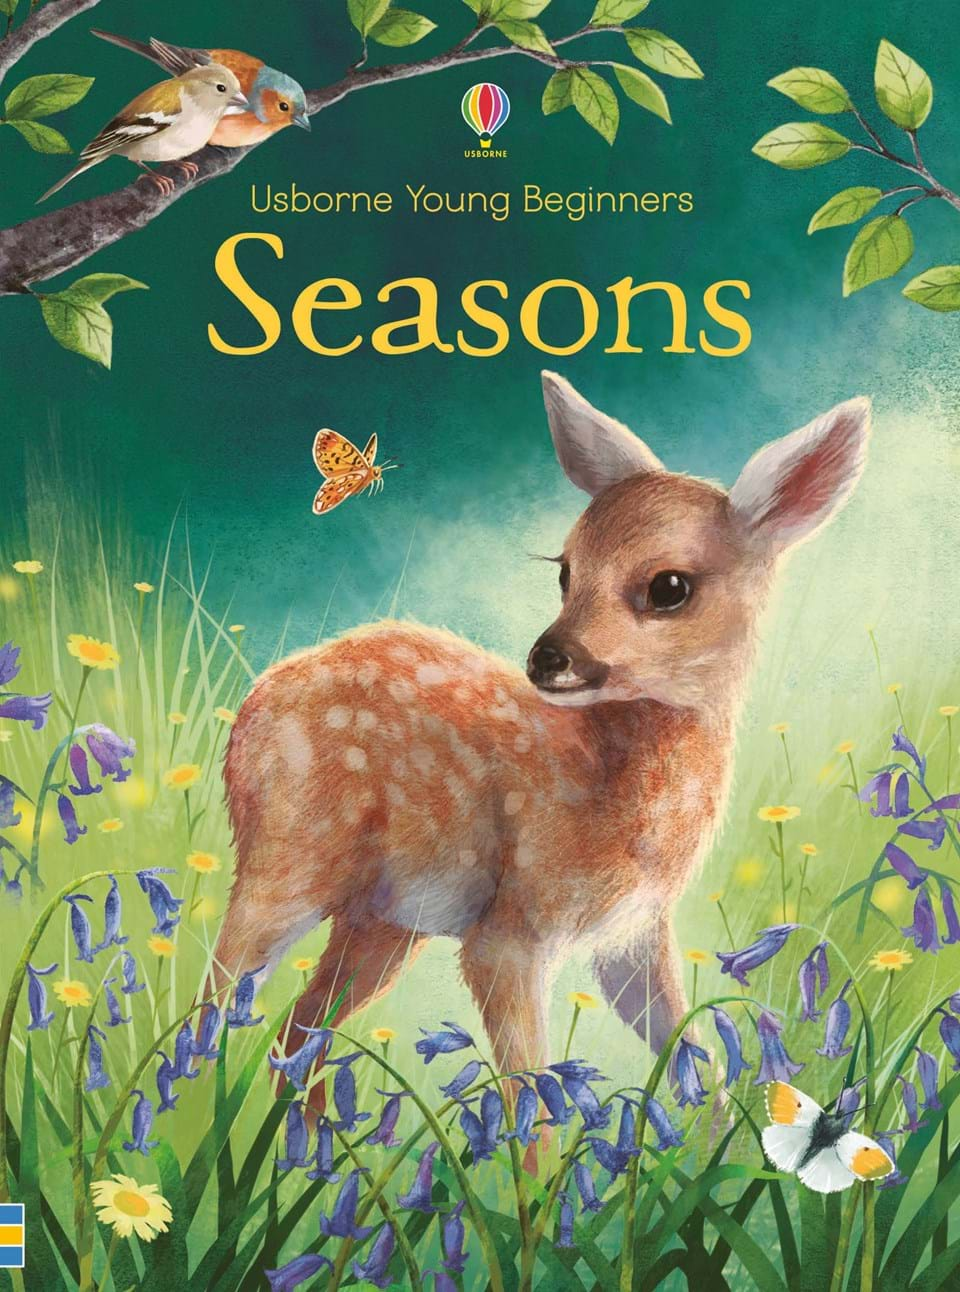 seasons at usborne books at home organisers